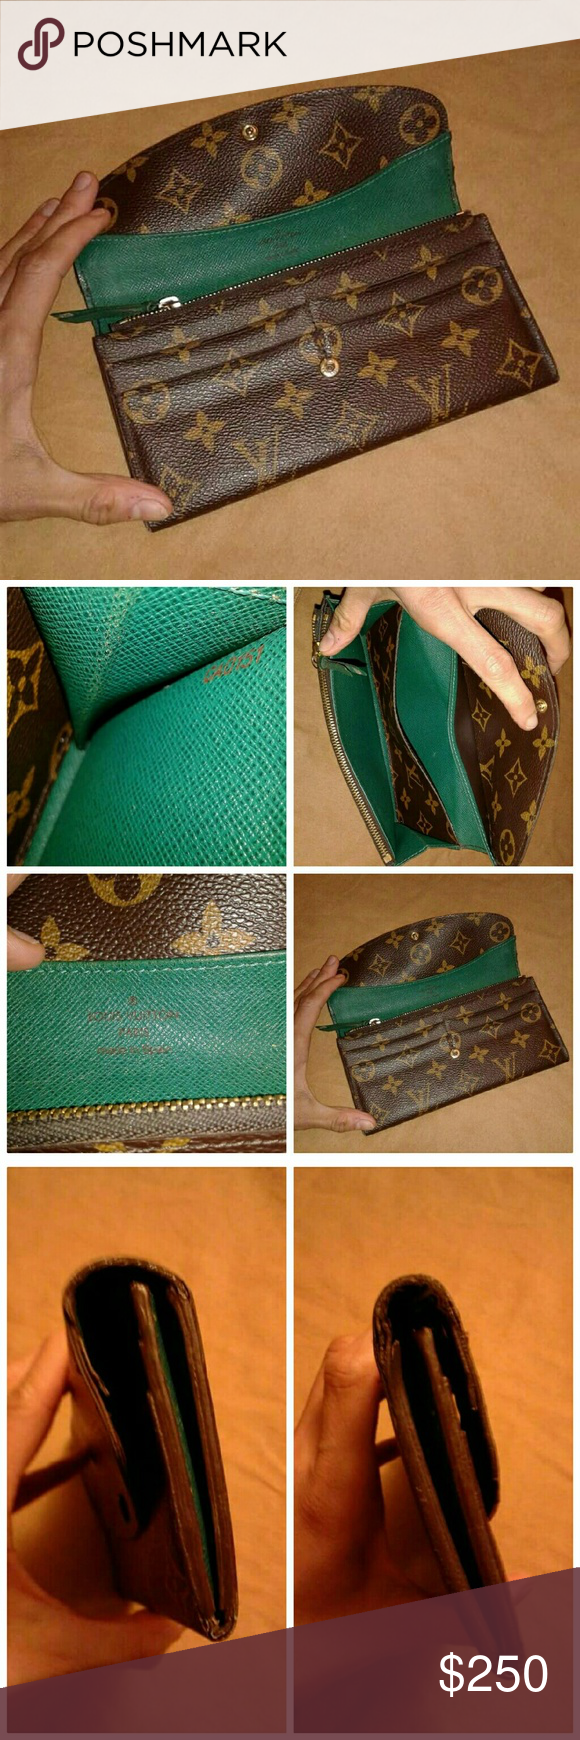 a6768a4b29f2 Auth Louis Vuitton Emilie Wallet Green Auth Louis Vuitton Emilie Wallet  Green Wallet has signs of